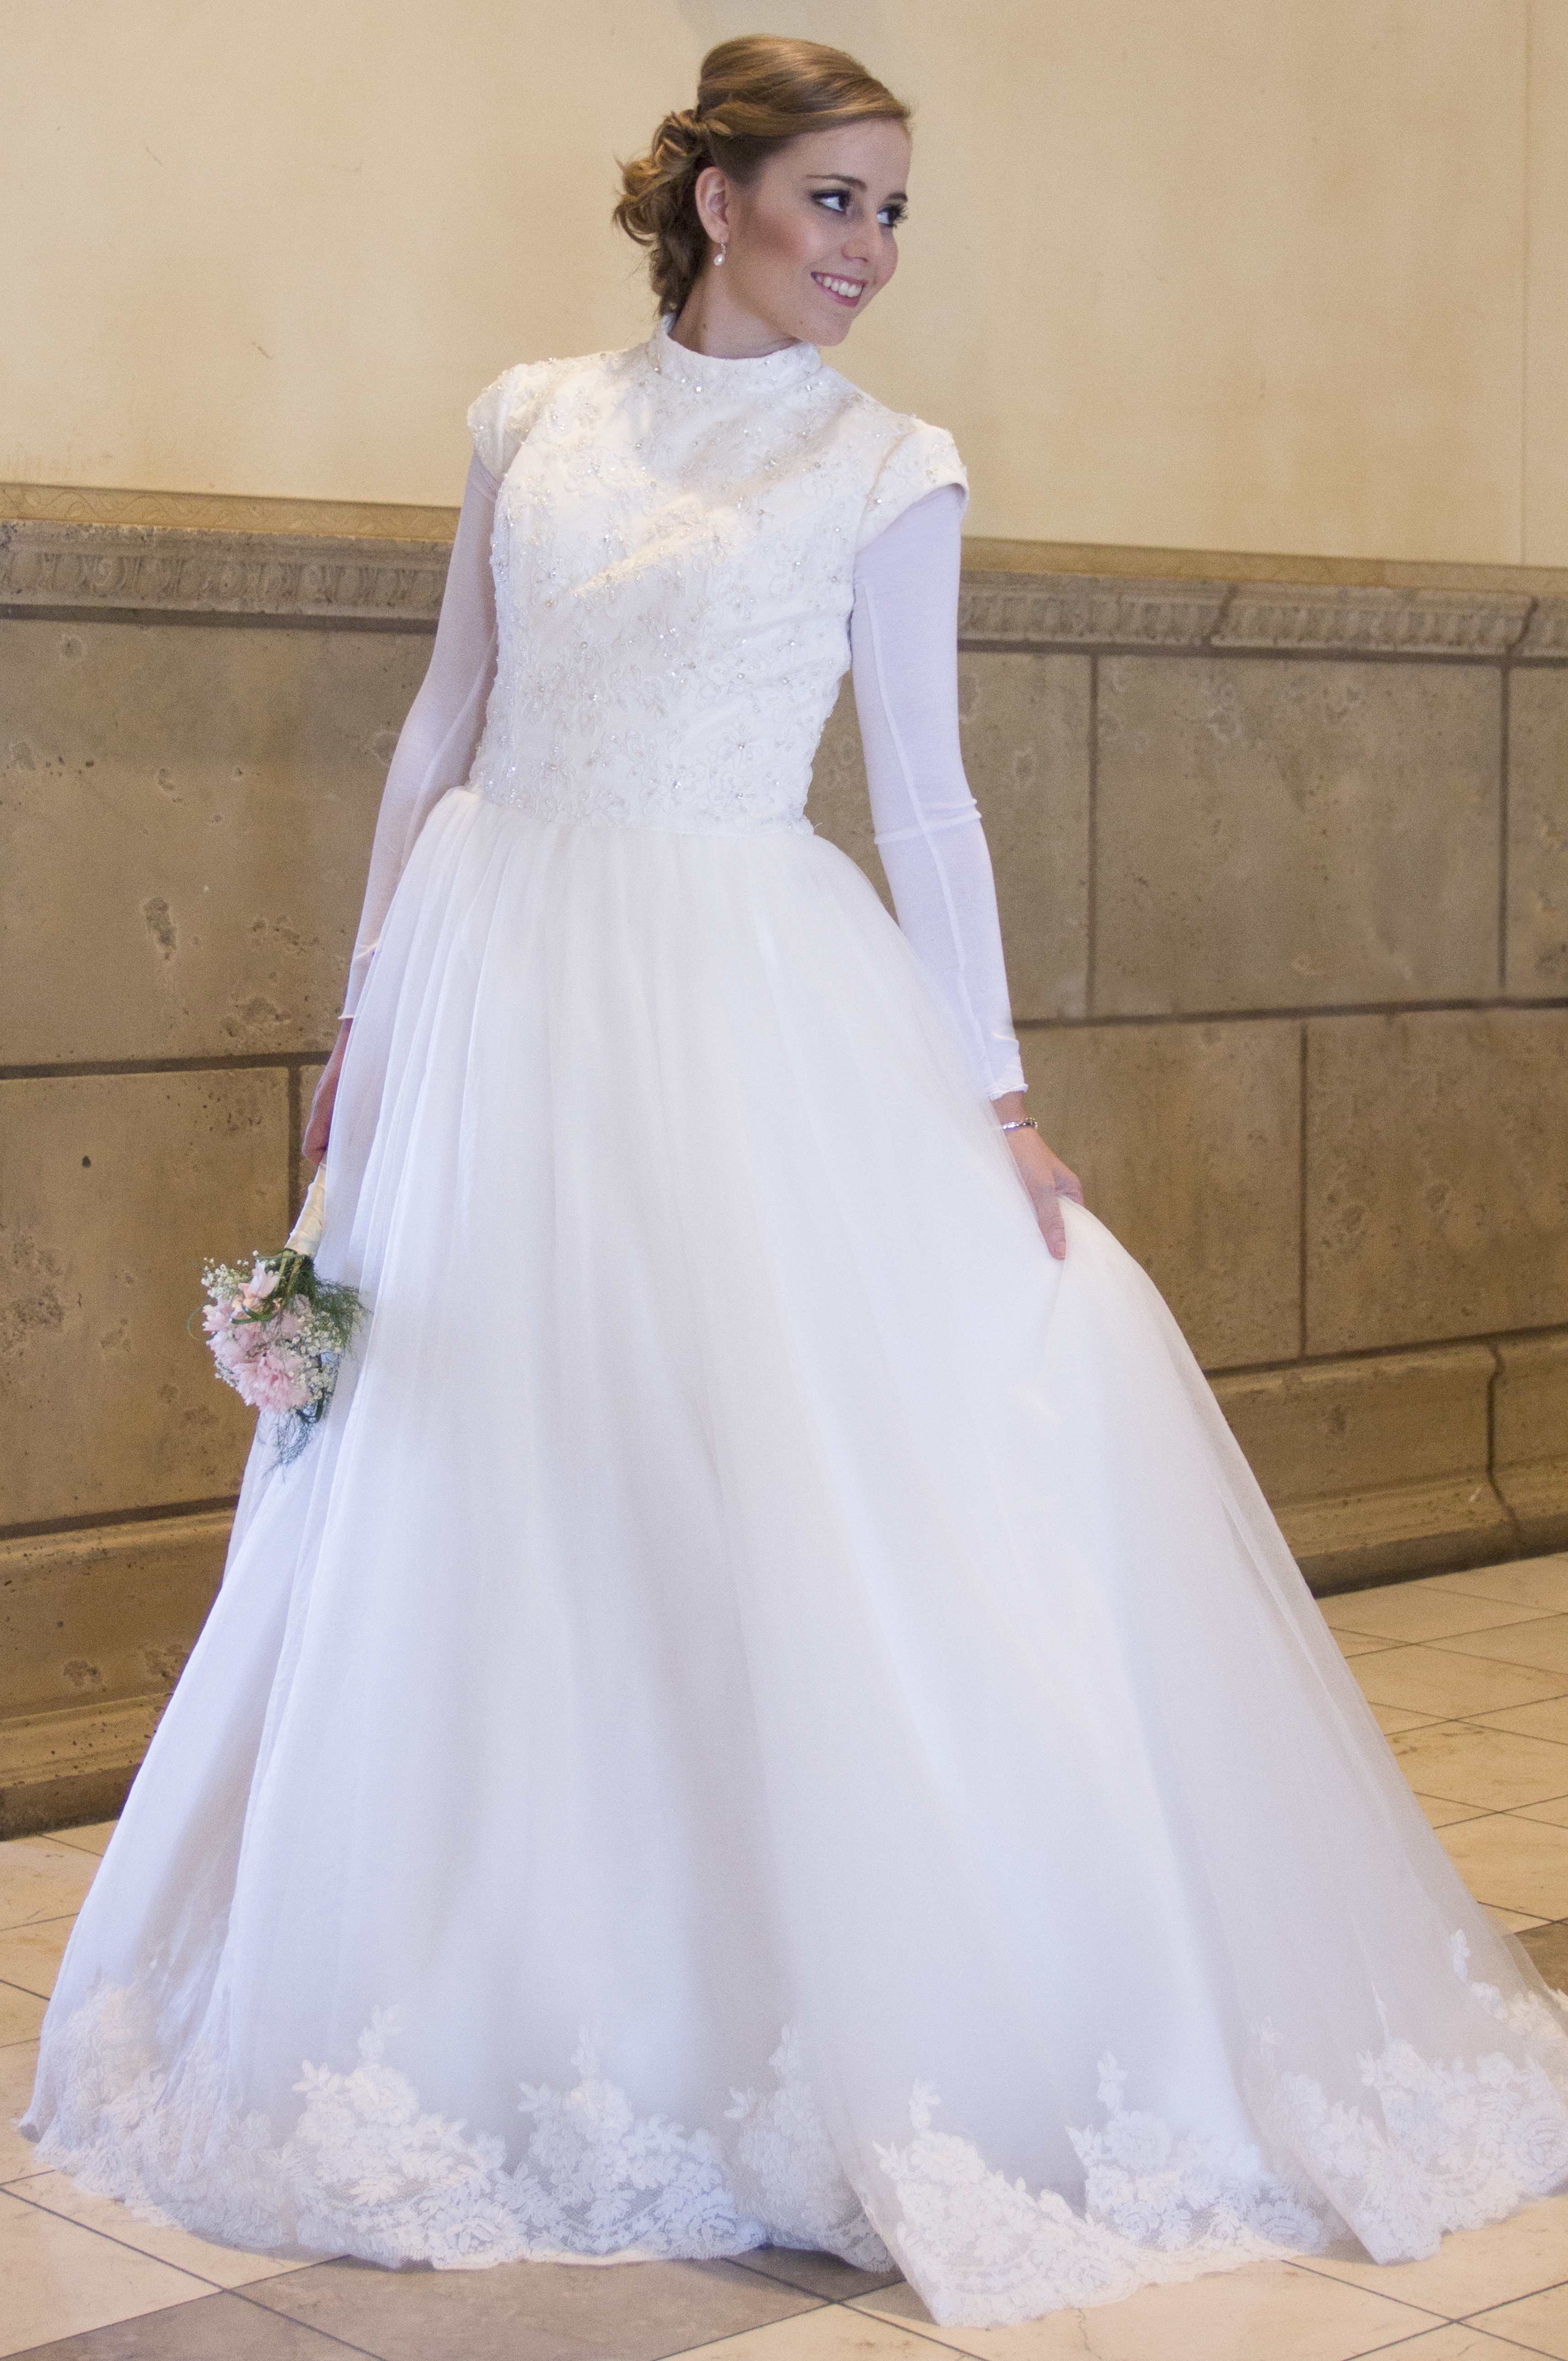 Kim Lace Modest Wedding Dress with Sleeves